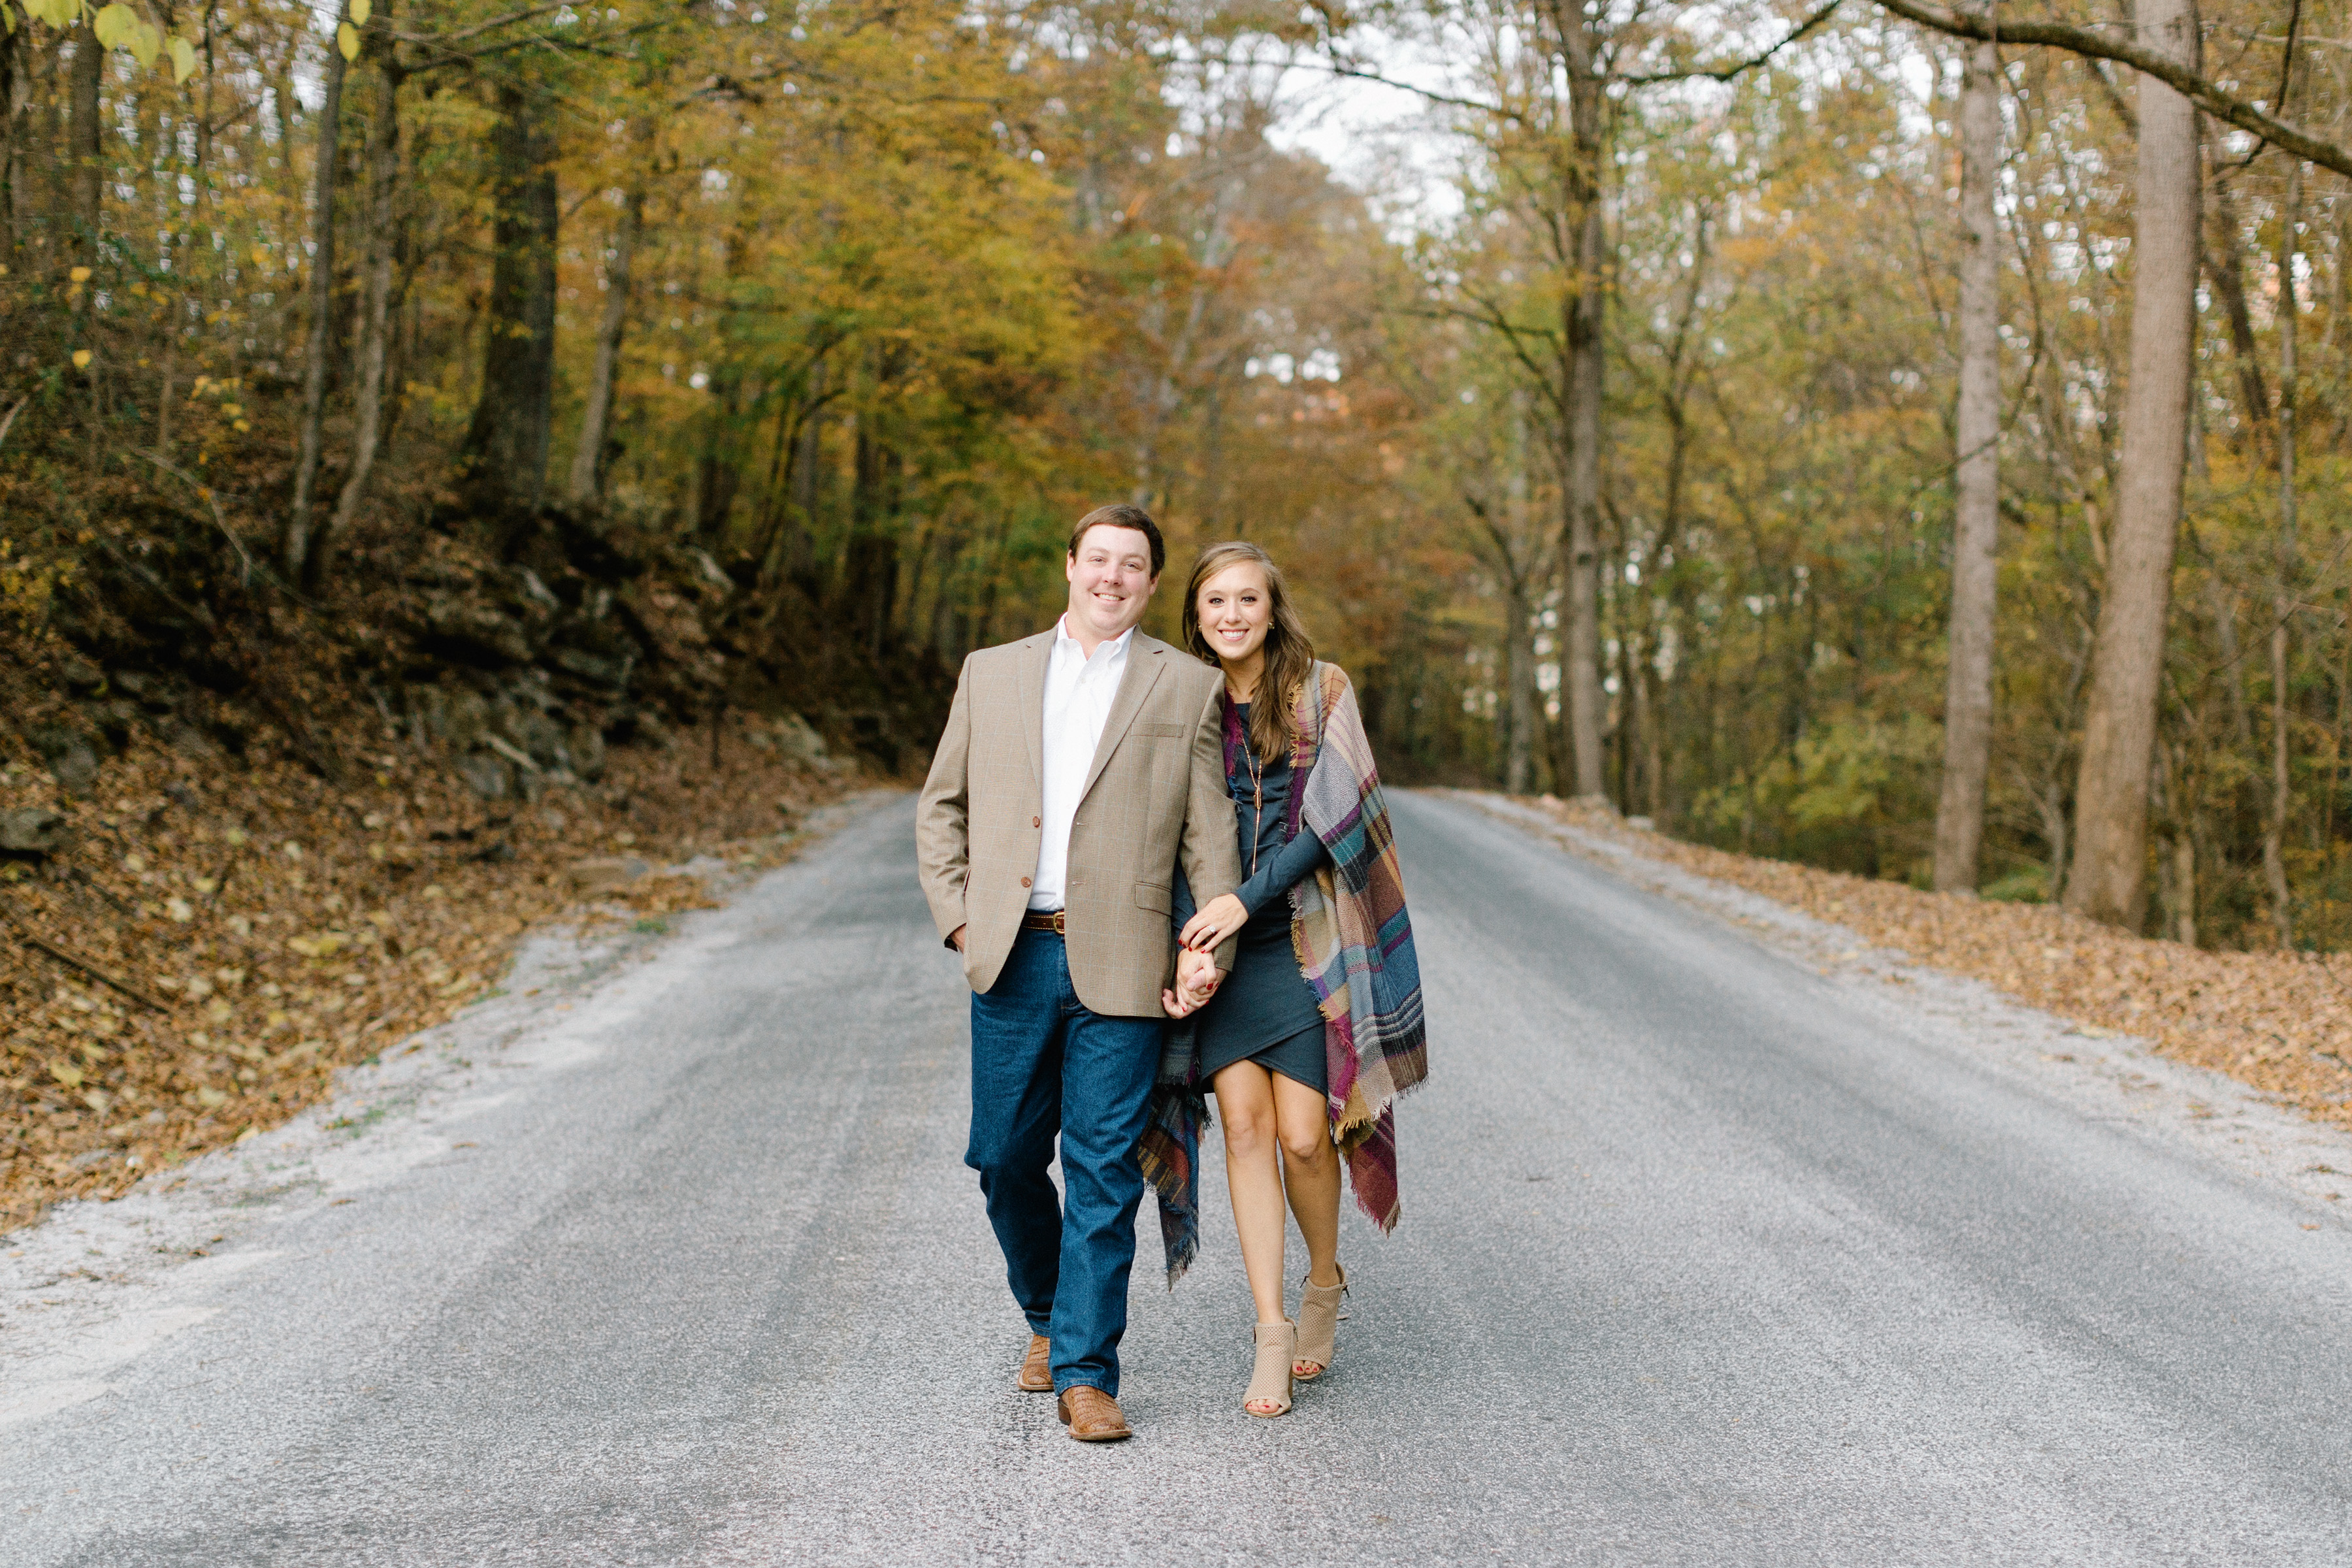 0109 She Said Yes: Morgan Drake Blog She Said Yes    invision_events, birmingham_al, auburn_al, alabama, atlanta_ga, atl, georgia, wedding_planner, wedding_designer, weddings, photography, wedding_planning